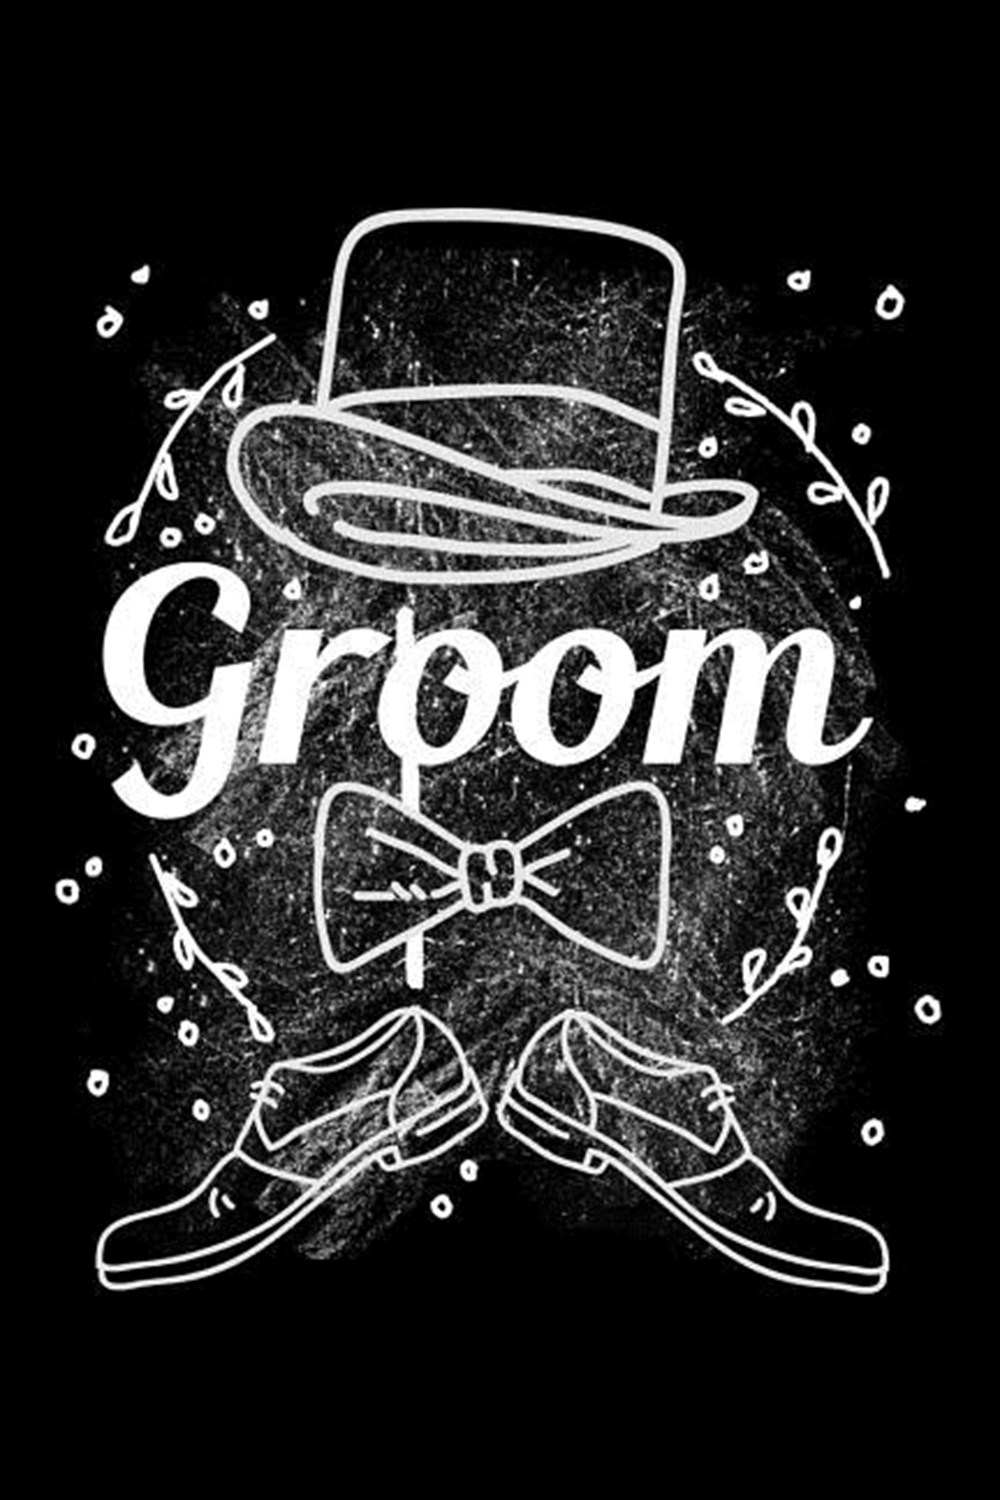 Groom Blank Paper Sketch Book - Artist Sketch Pad Journal for Sketching, Doodling, Drawing, Painting